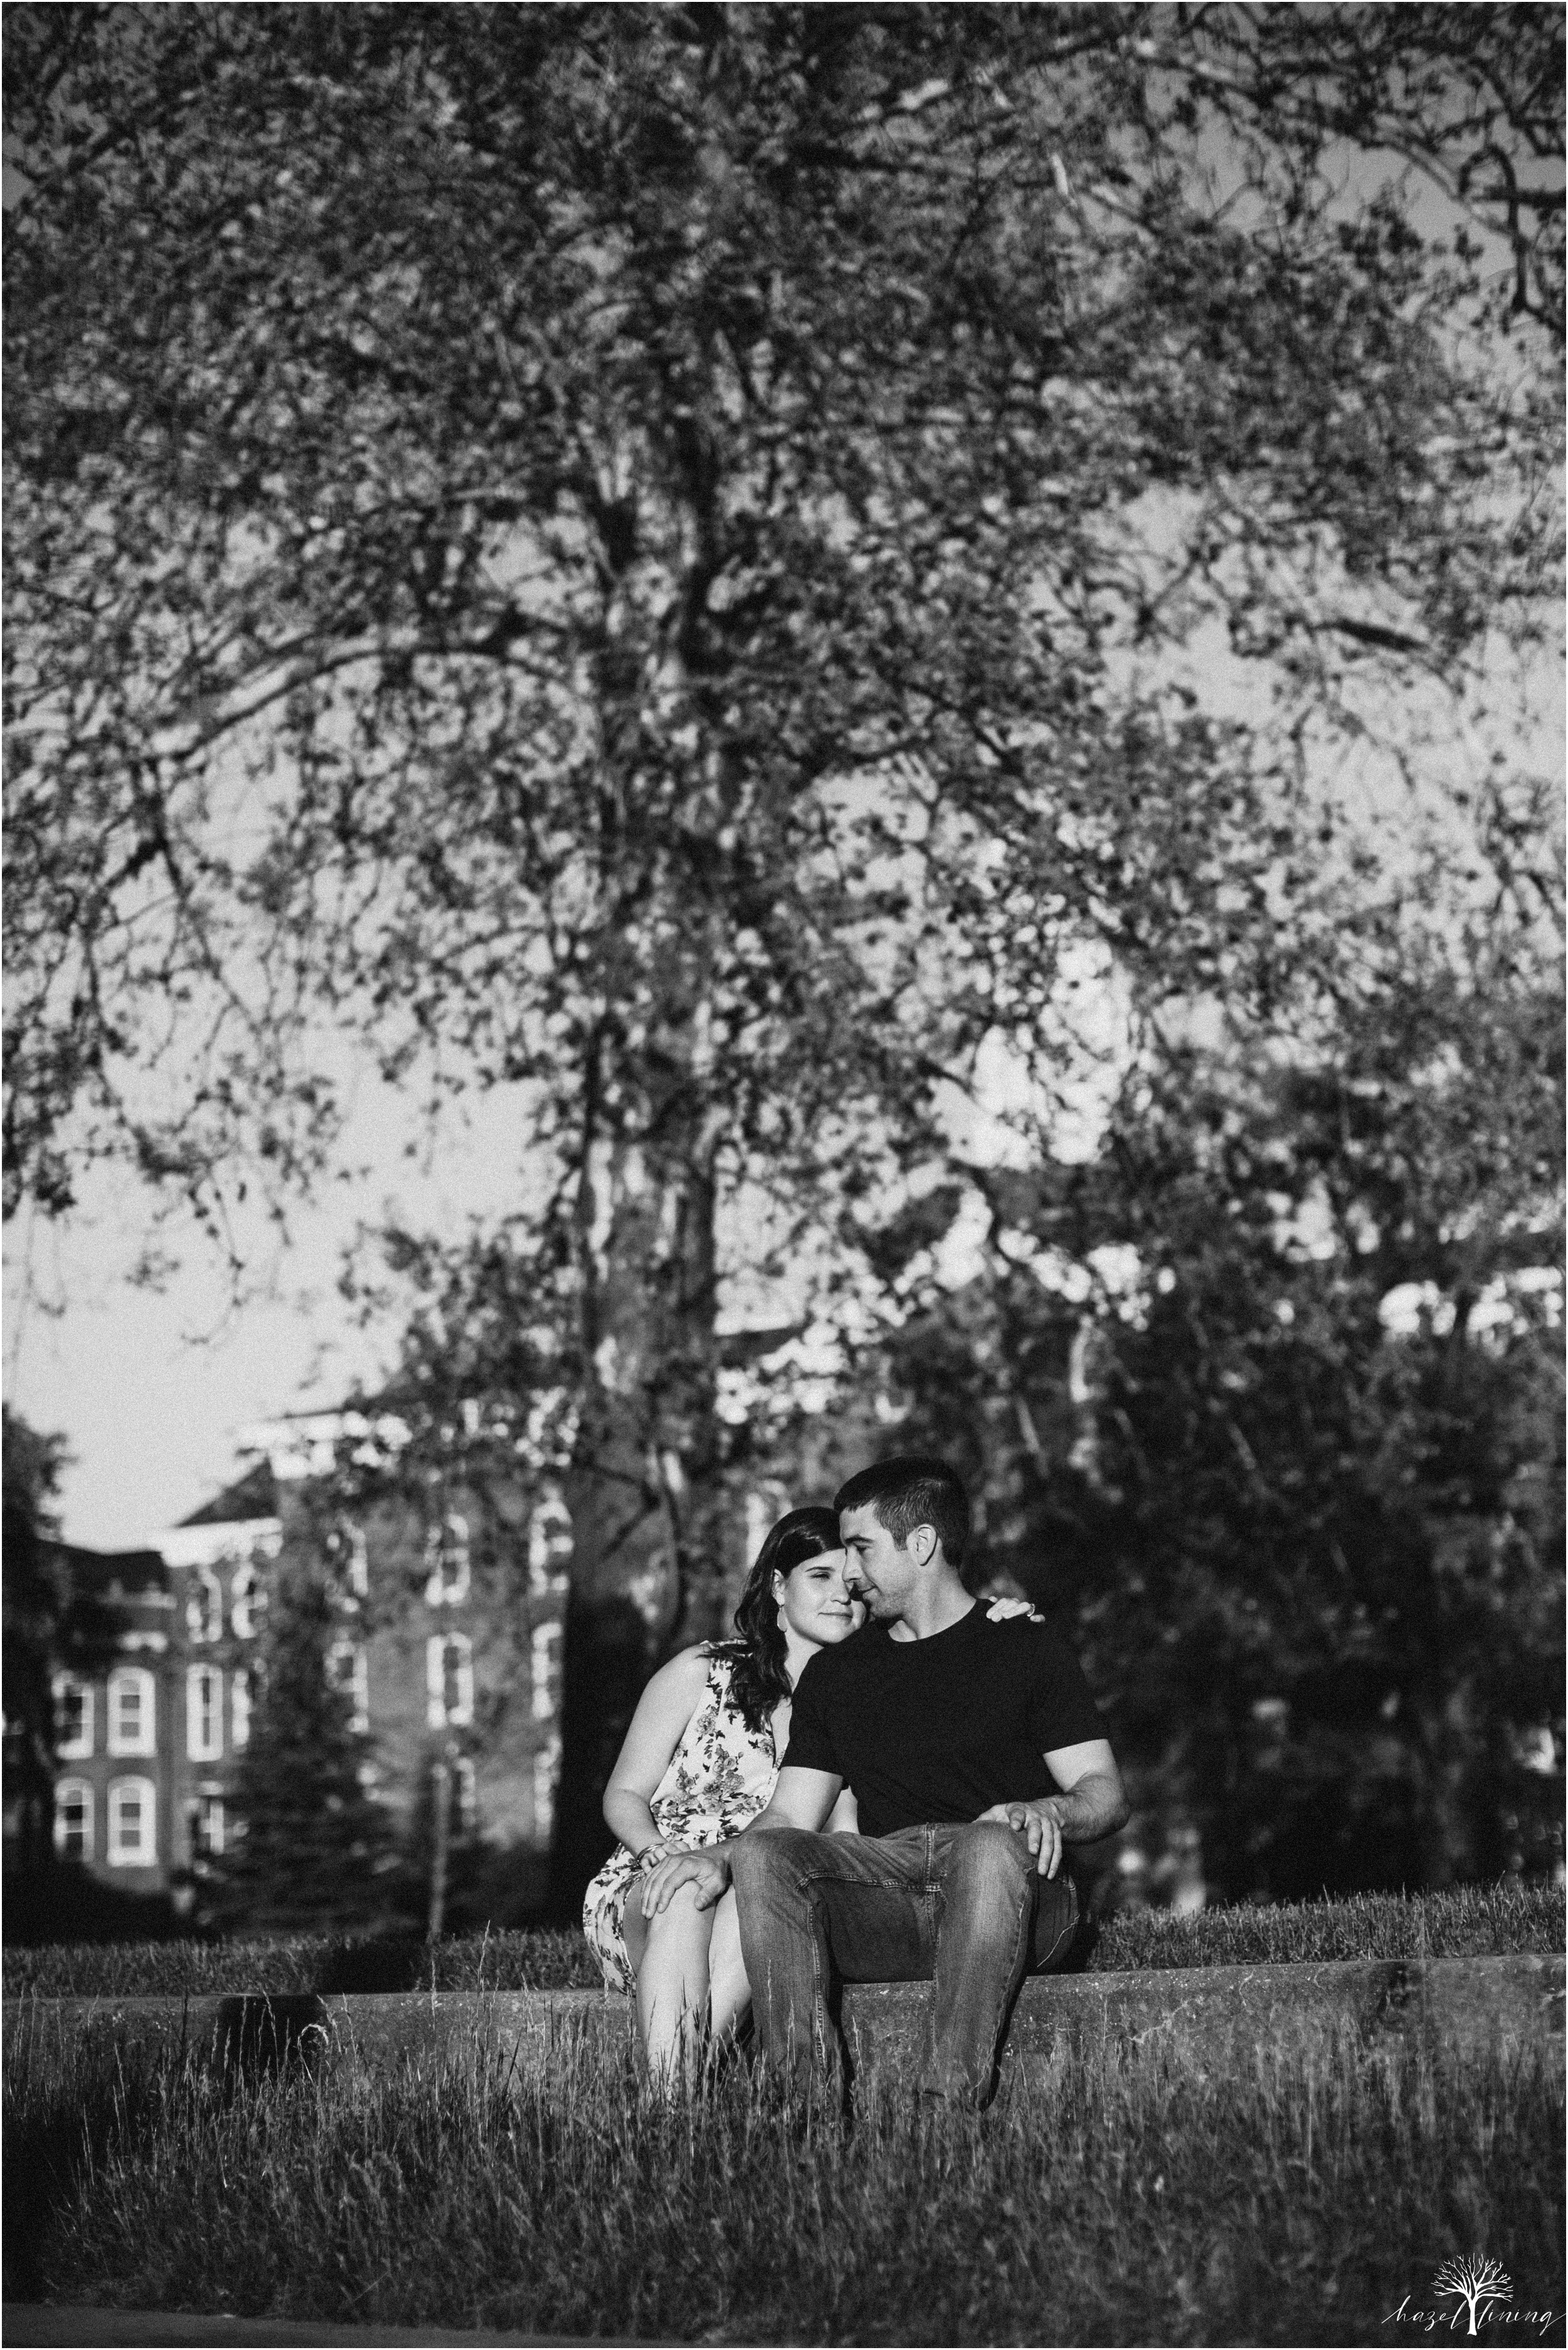 ellyn-jack-kutztown-university-of-pennsylvania-engagement-session-hazel-lining-photography-destination-elopement-wedding-engagement-photography_0256.jpg